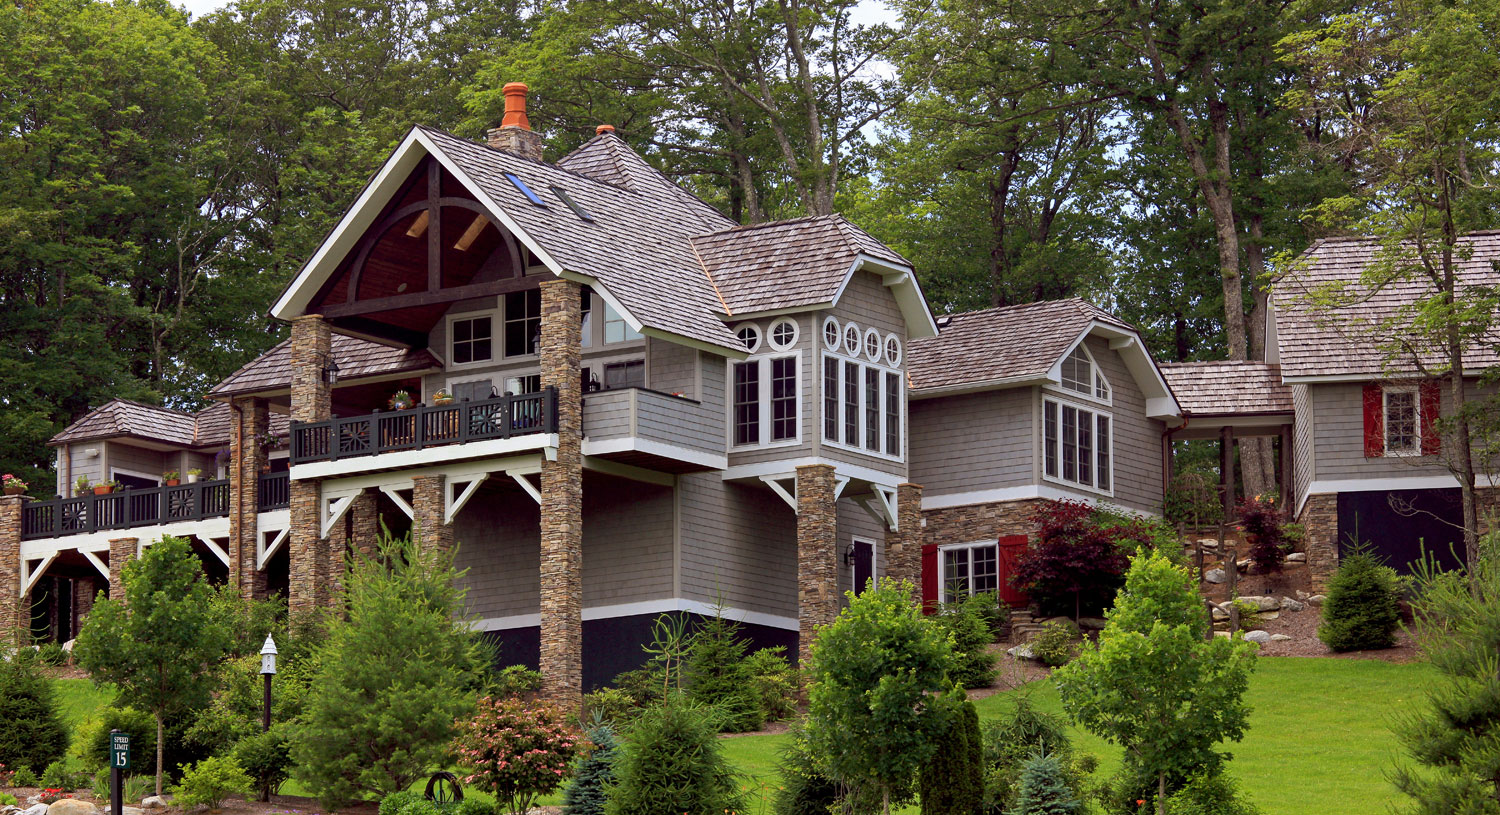 Exterior of custom designed home by Pavelchak Architecture in Blowing Rock, North Carolina, near Boone.